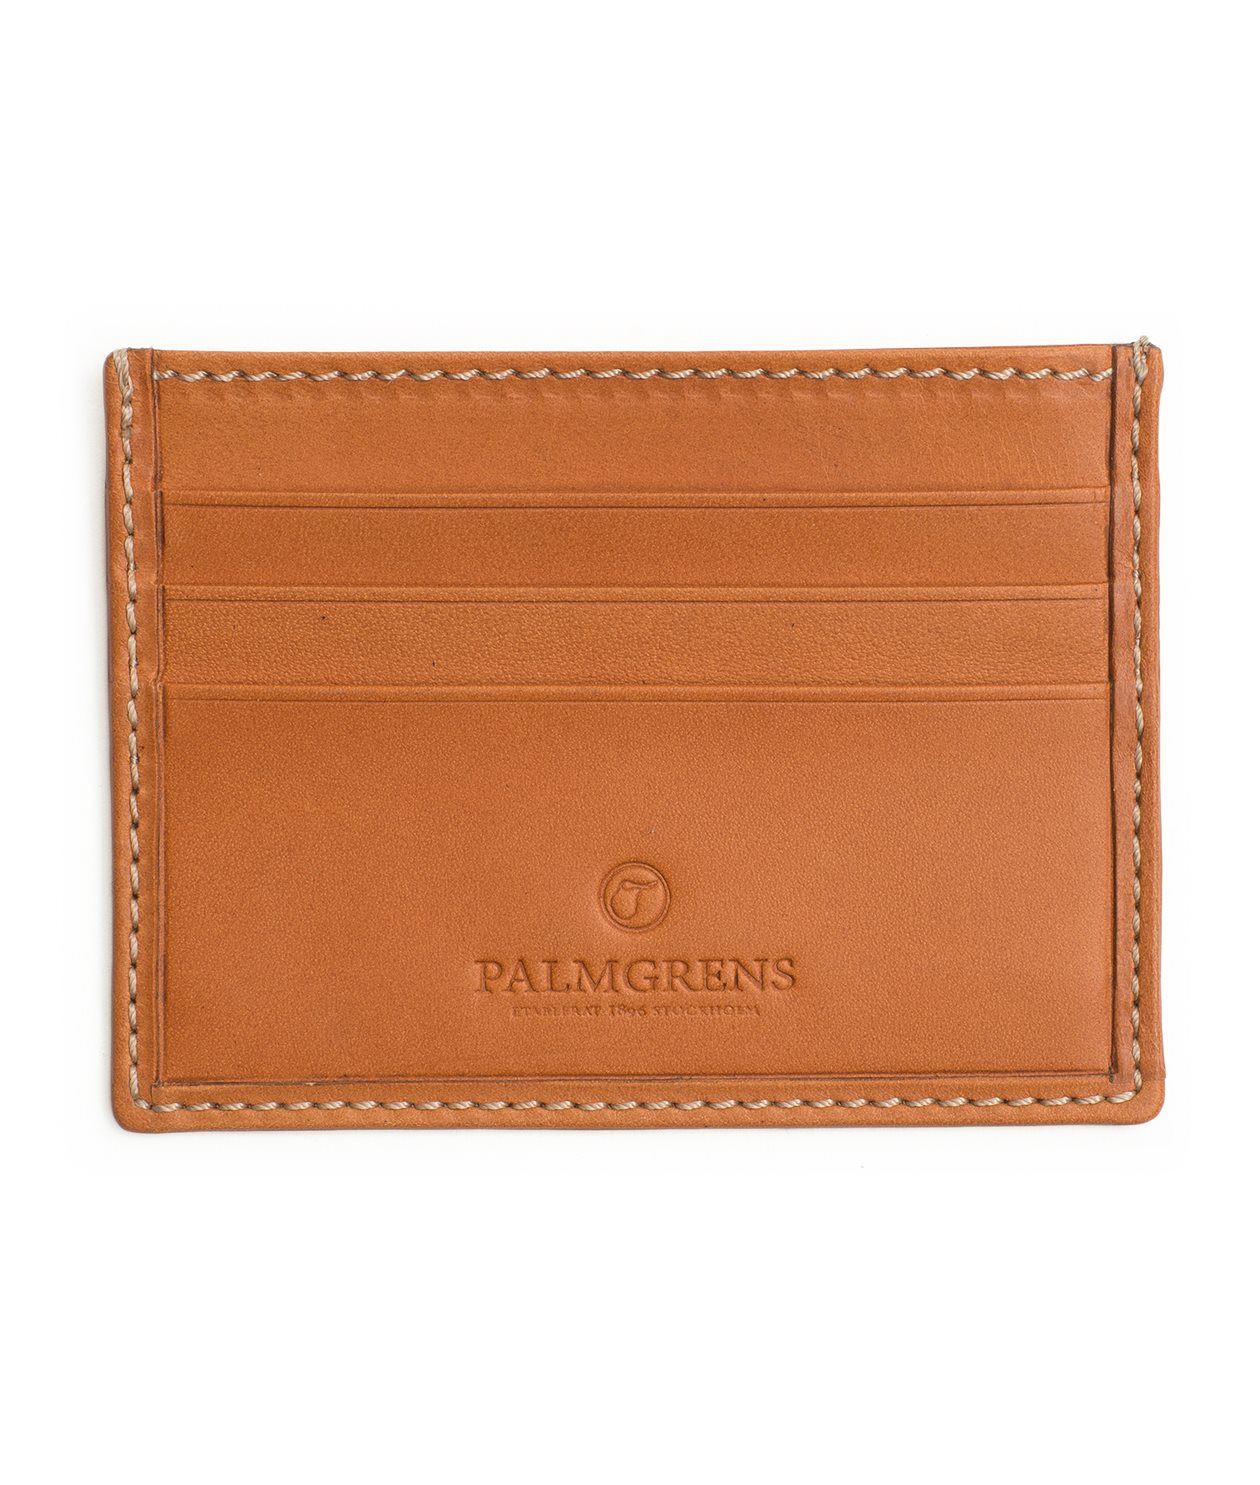 4b566513e76e Small Leather Goods   Wallets   Card holder. Card holder. Laddar zoom